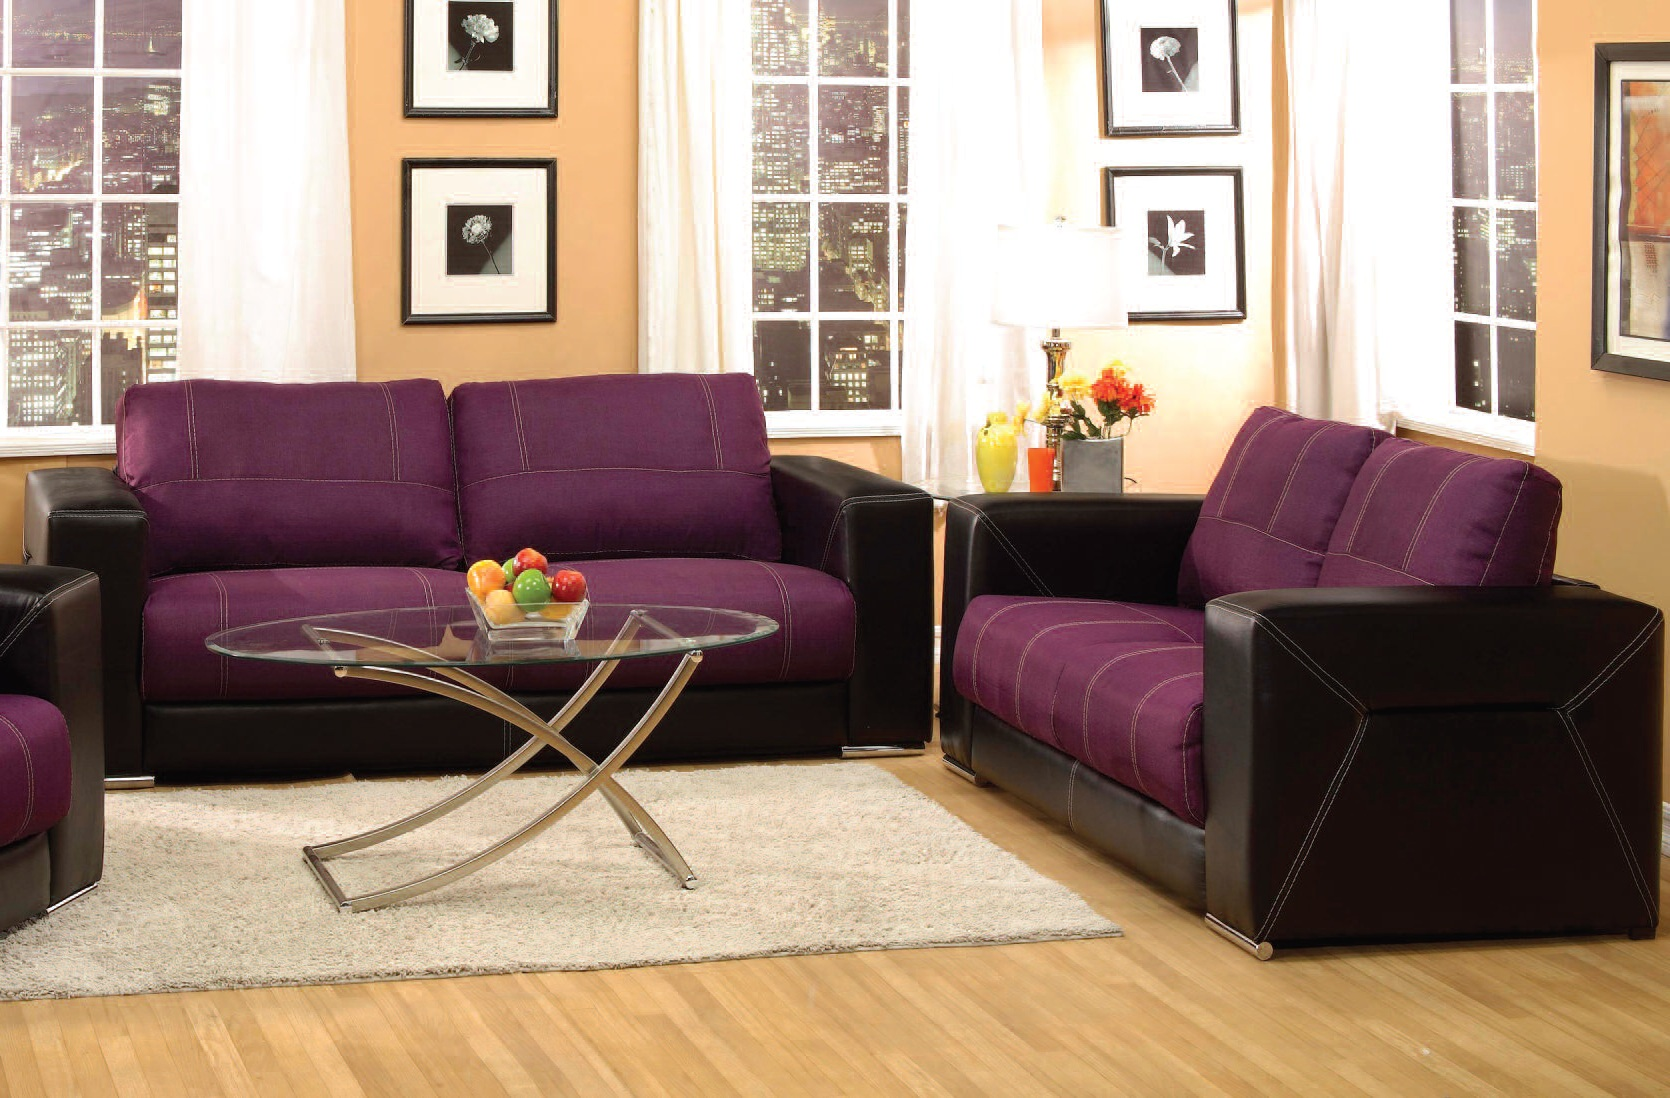 Sofa And Love Sa Furniture San Antonio Furniture Of Texas